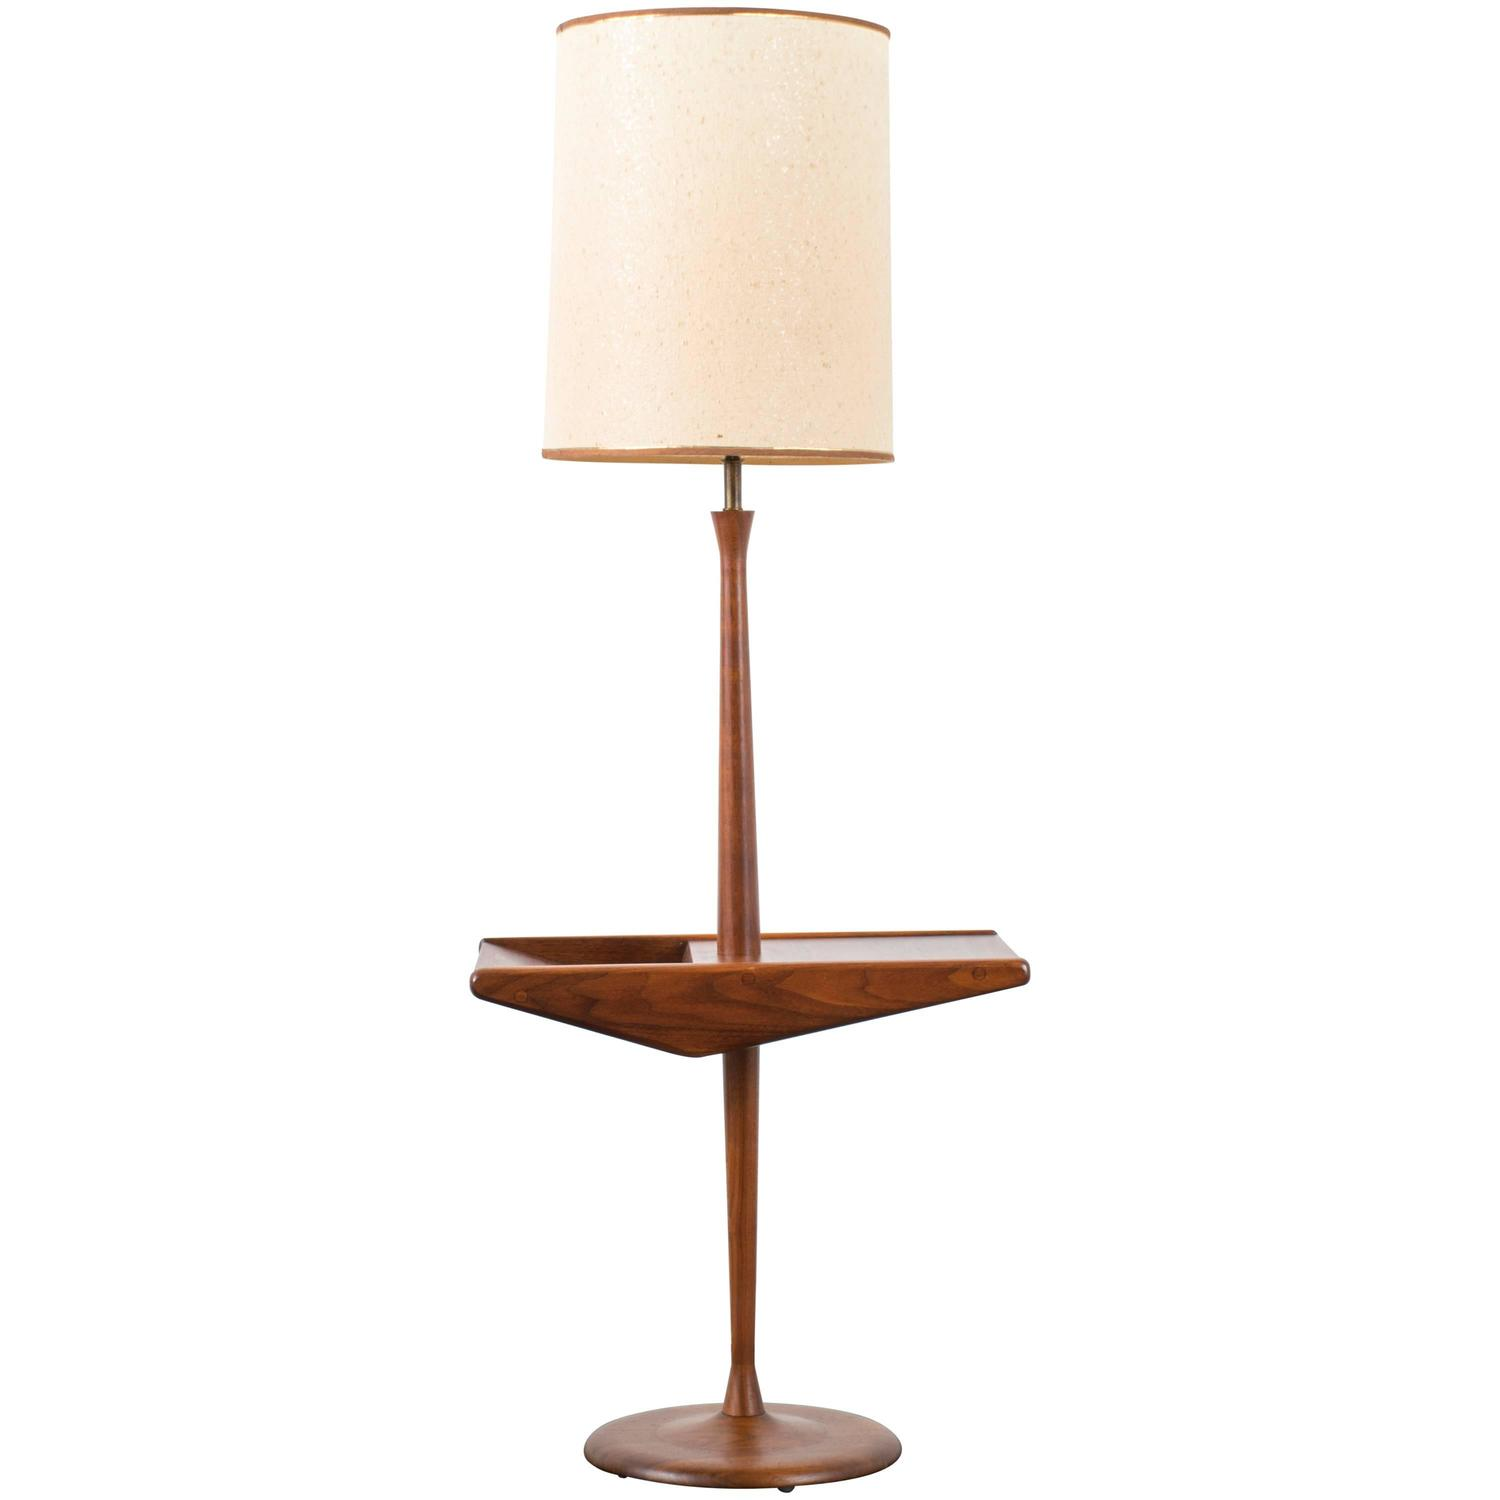 Mid Century Modern Floor Lamp By Laurel Lamp At 1stdibs